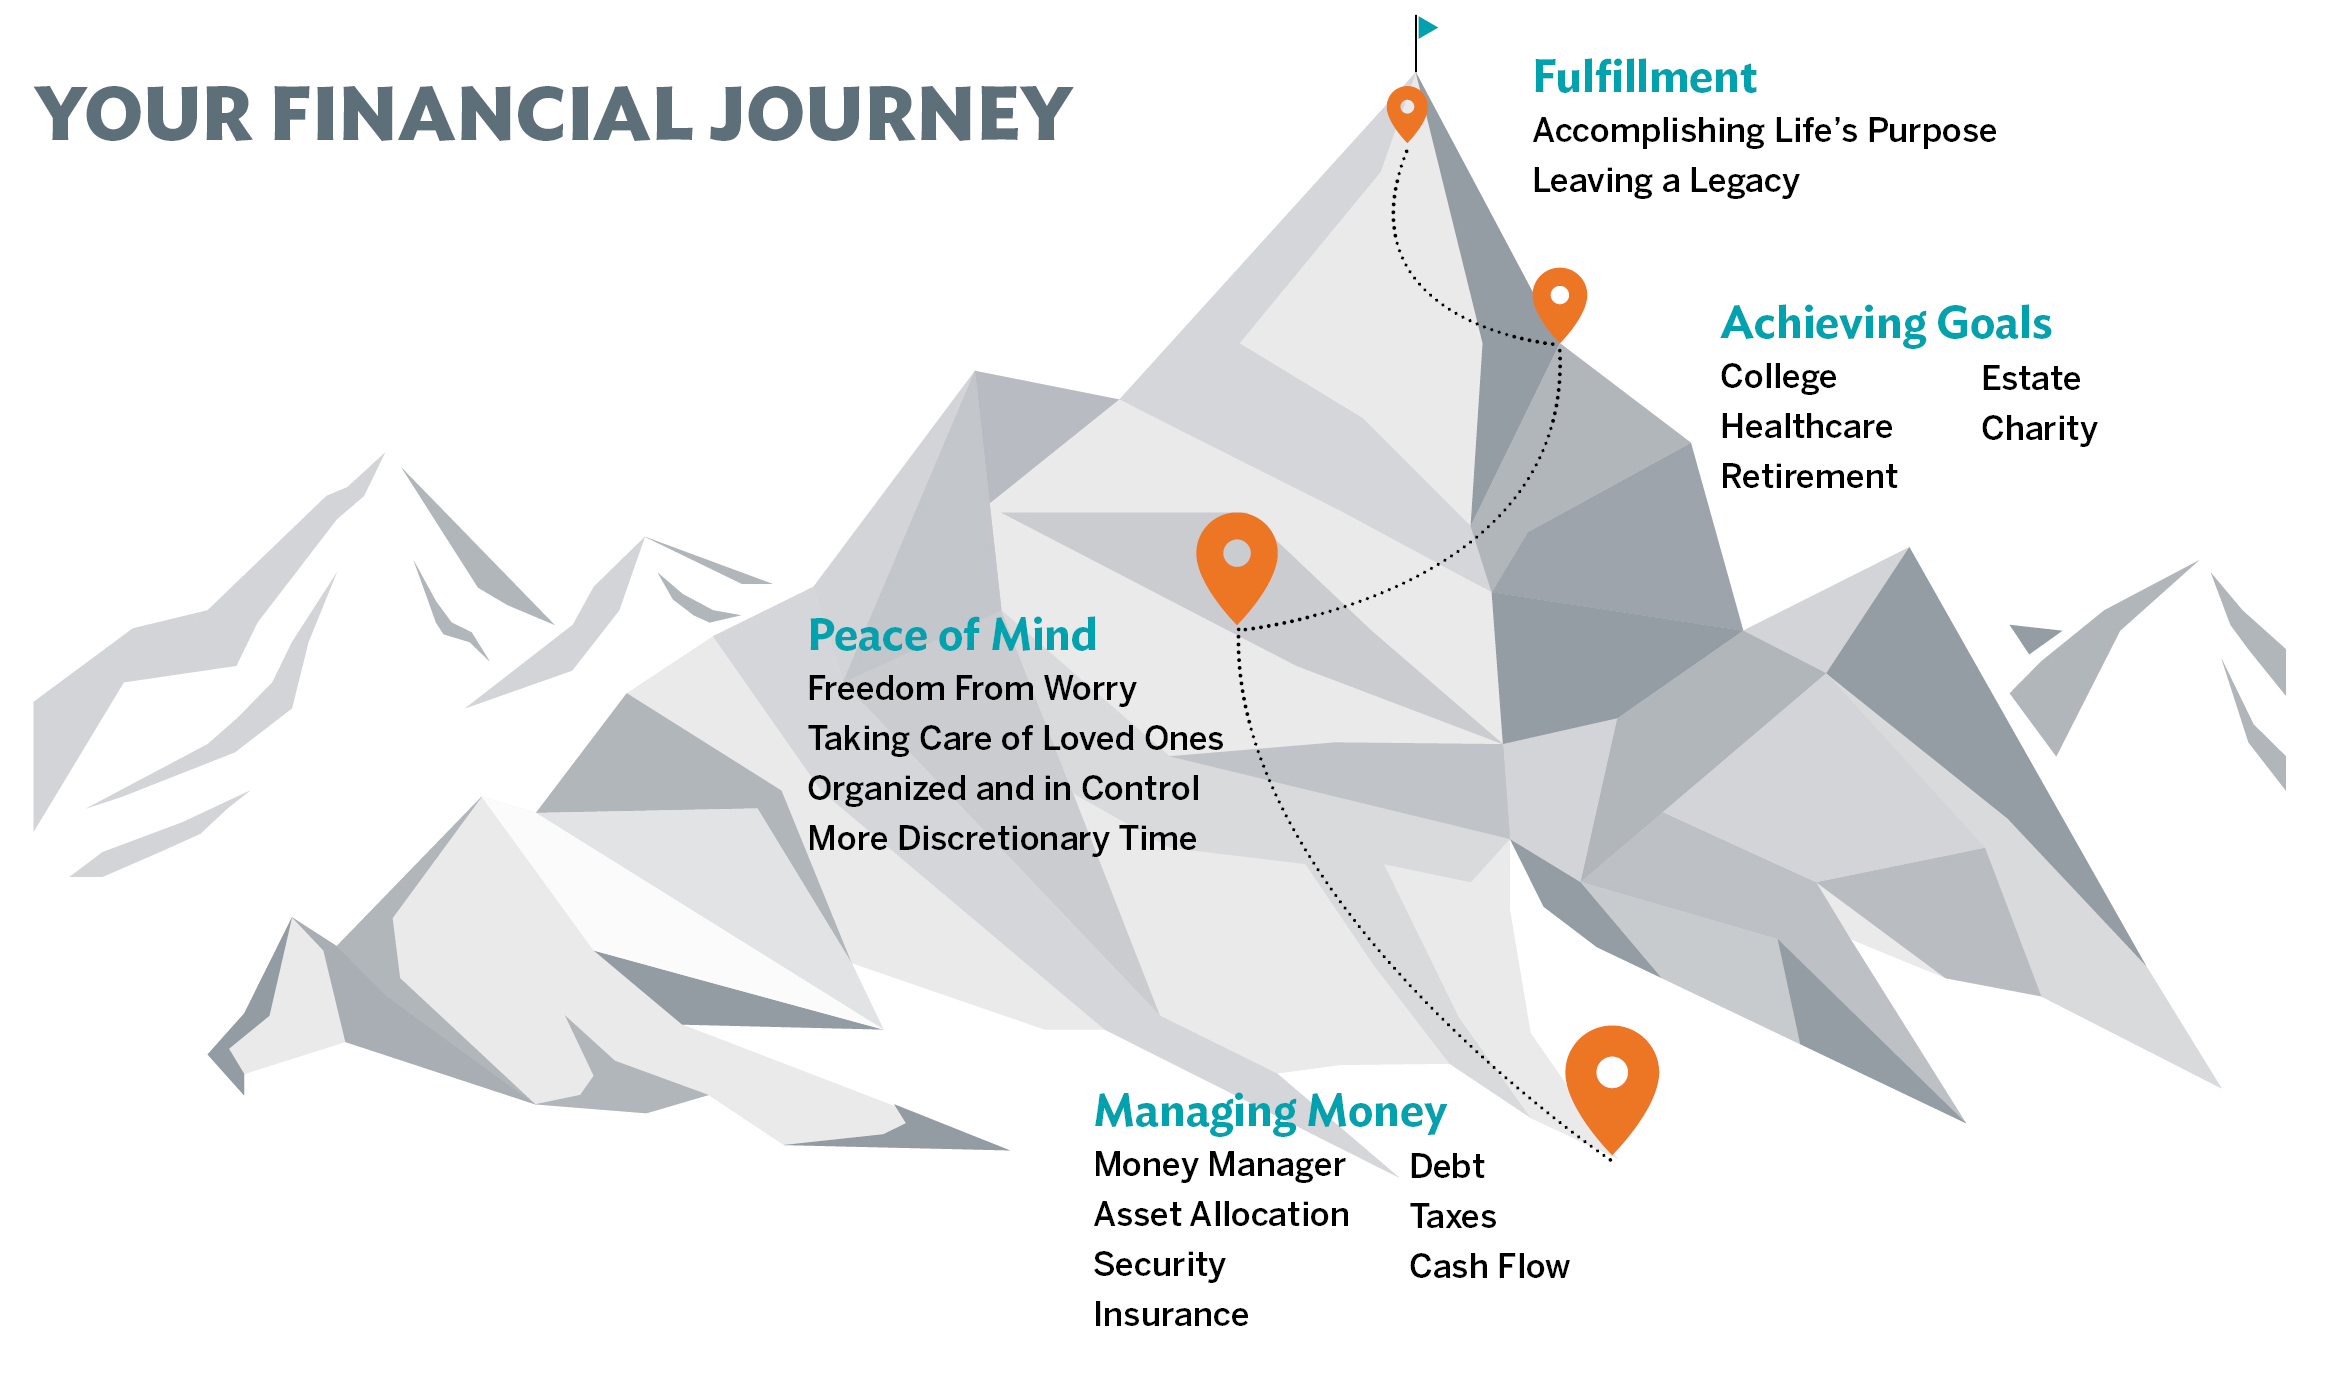 Your Financial Journey